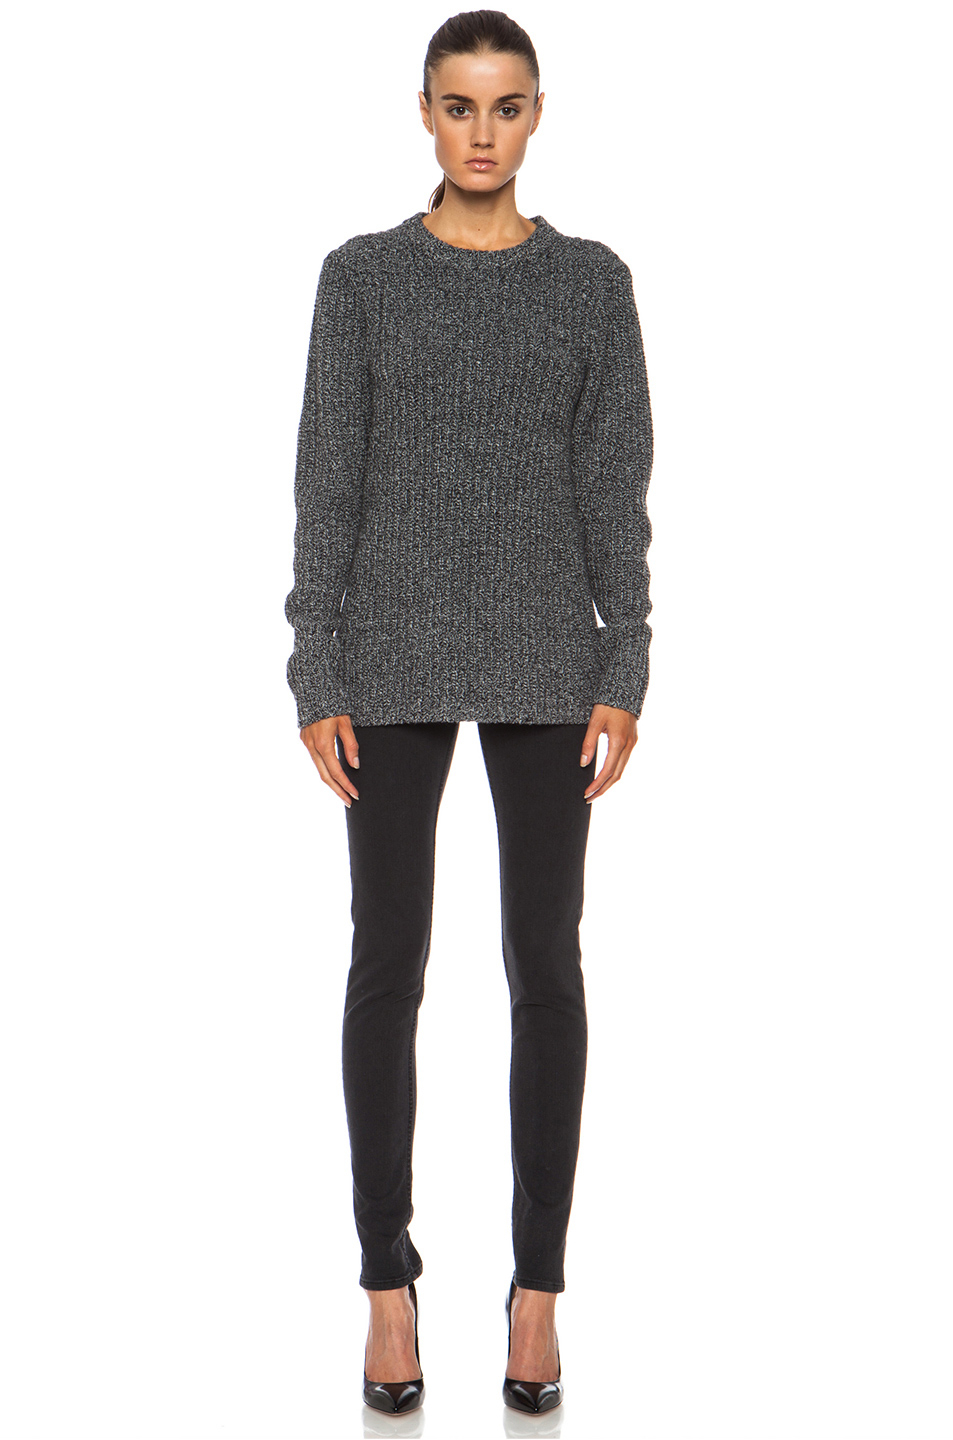 acne studios dixie wool sweater in black lyst. Black Bedroom Furniture Sets. Home Design Ideas